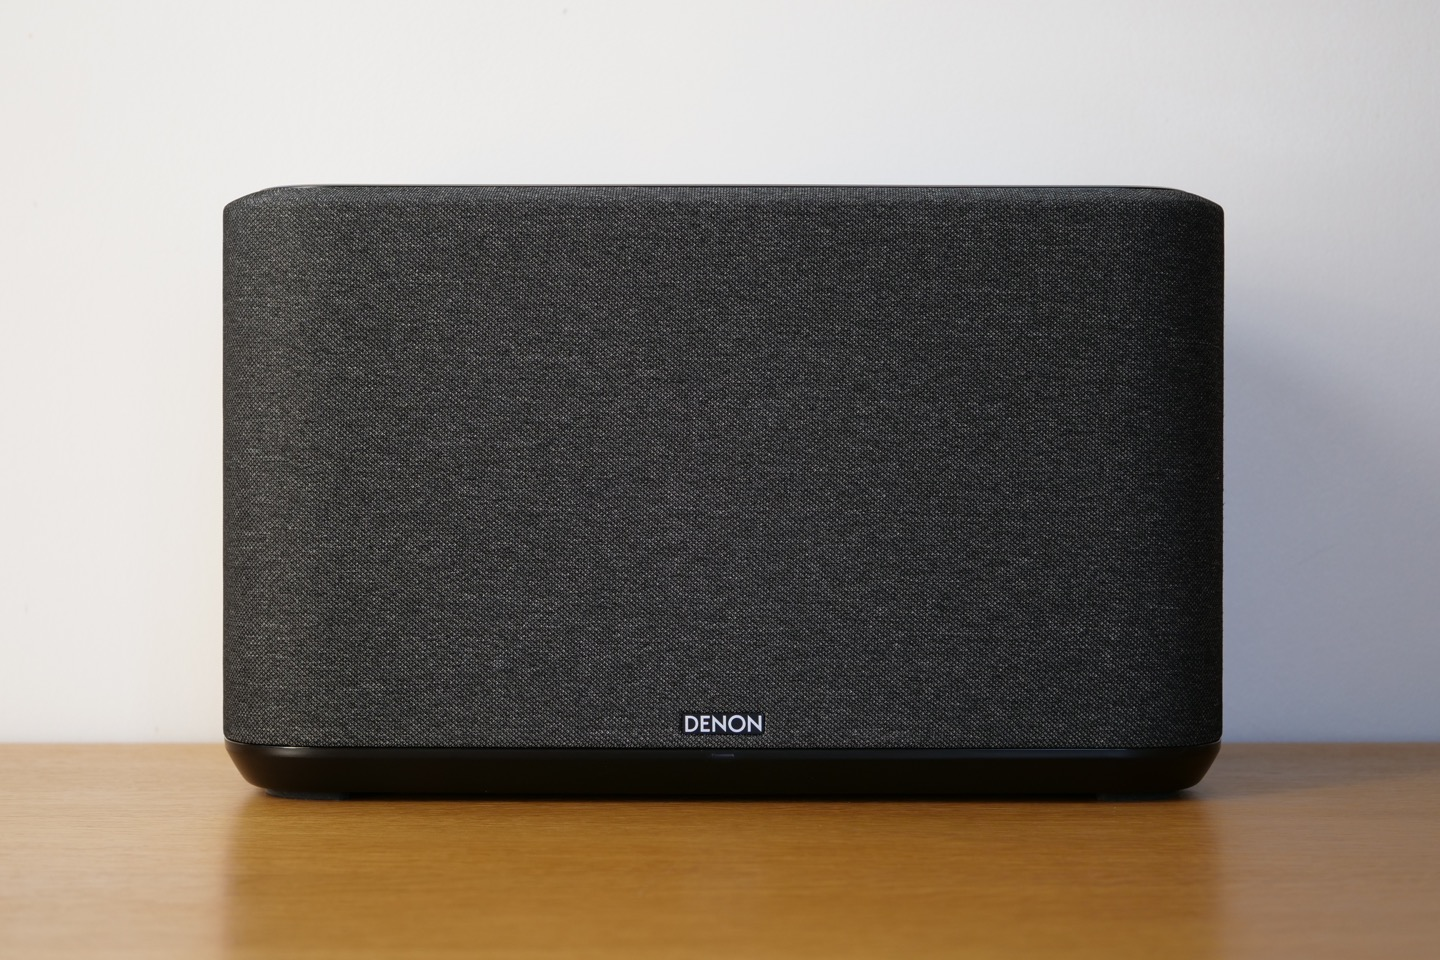 Test de l'enceinte connectée et sans fil Denon Home 350 : WiFi, AirPlay 2, Bluetooth, HEOS et multiroom